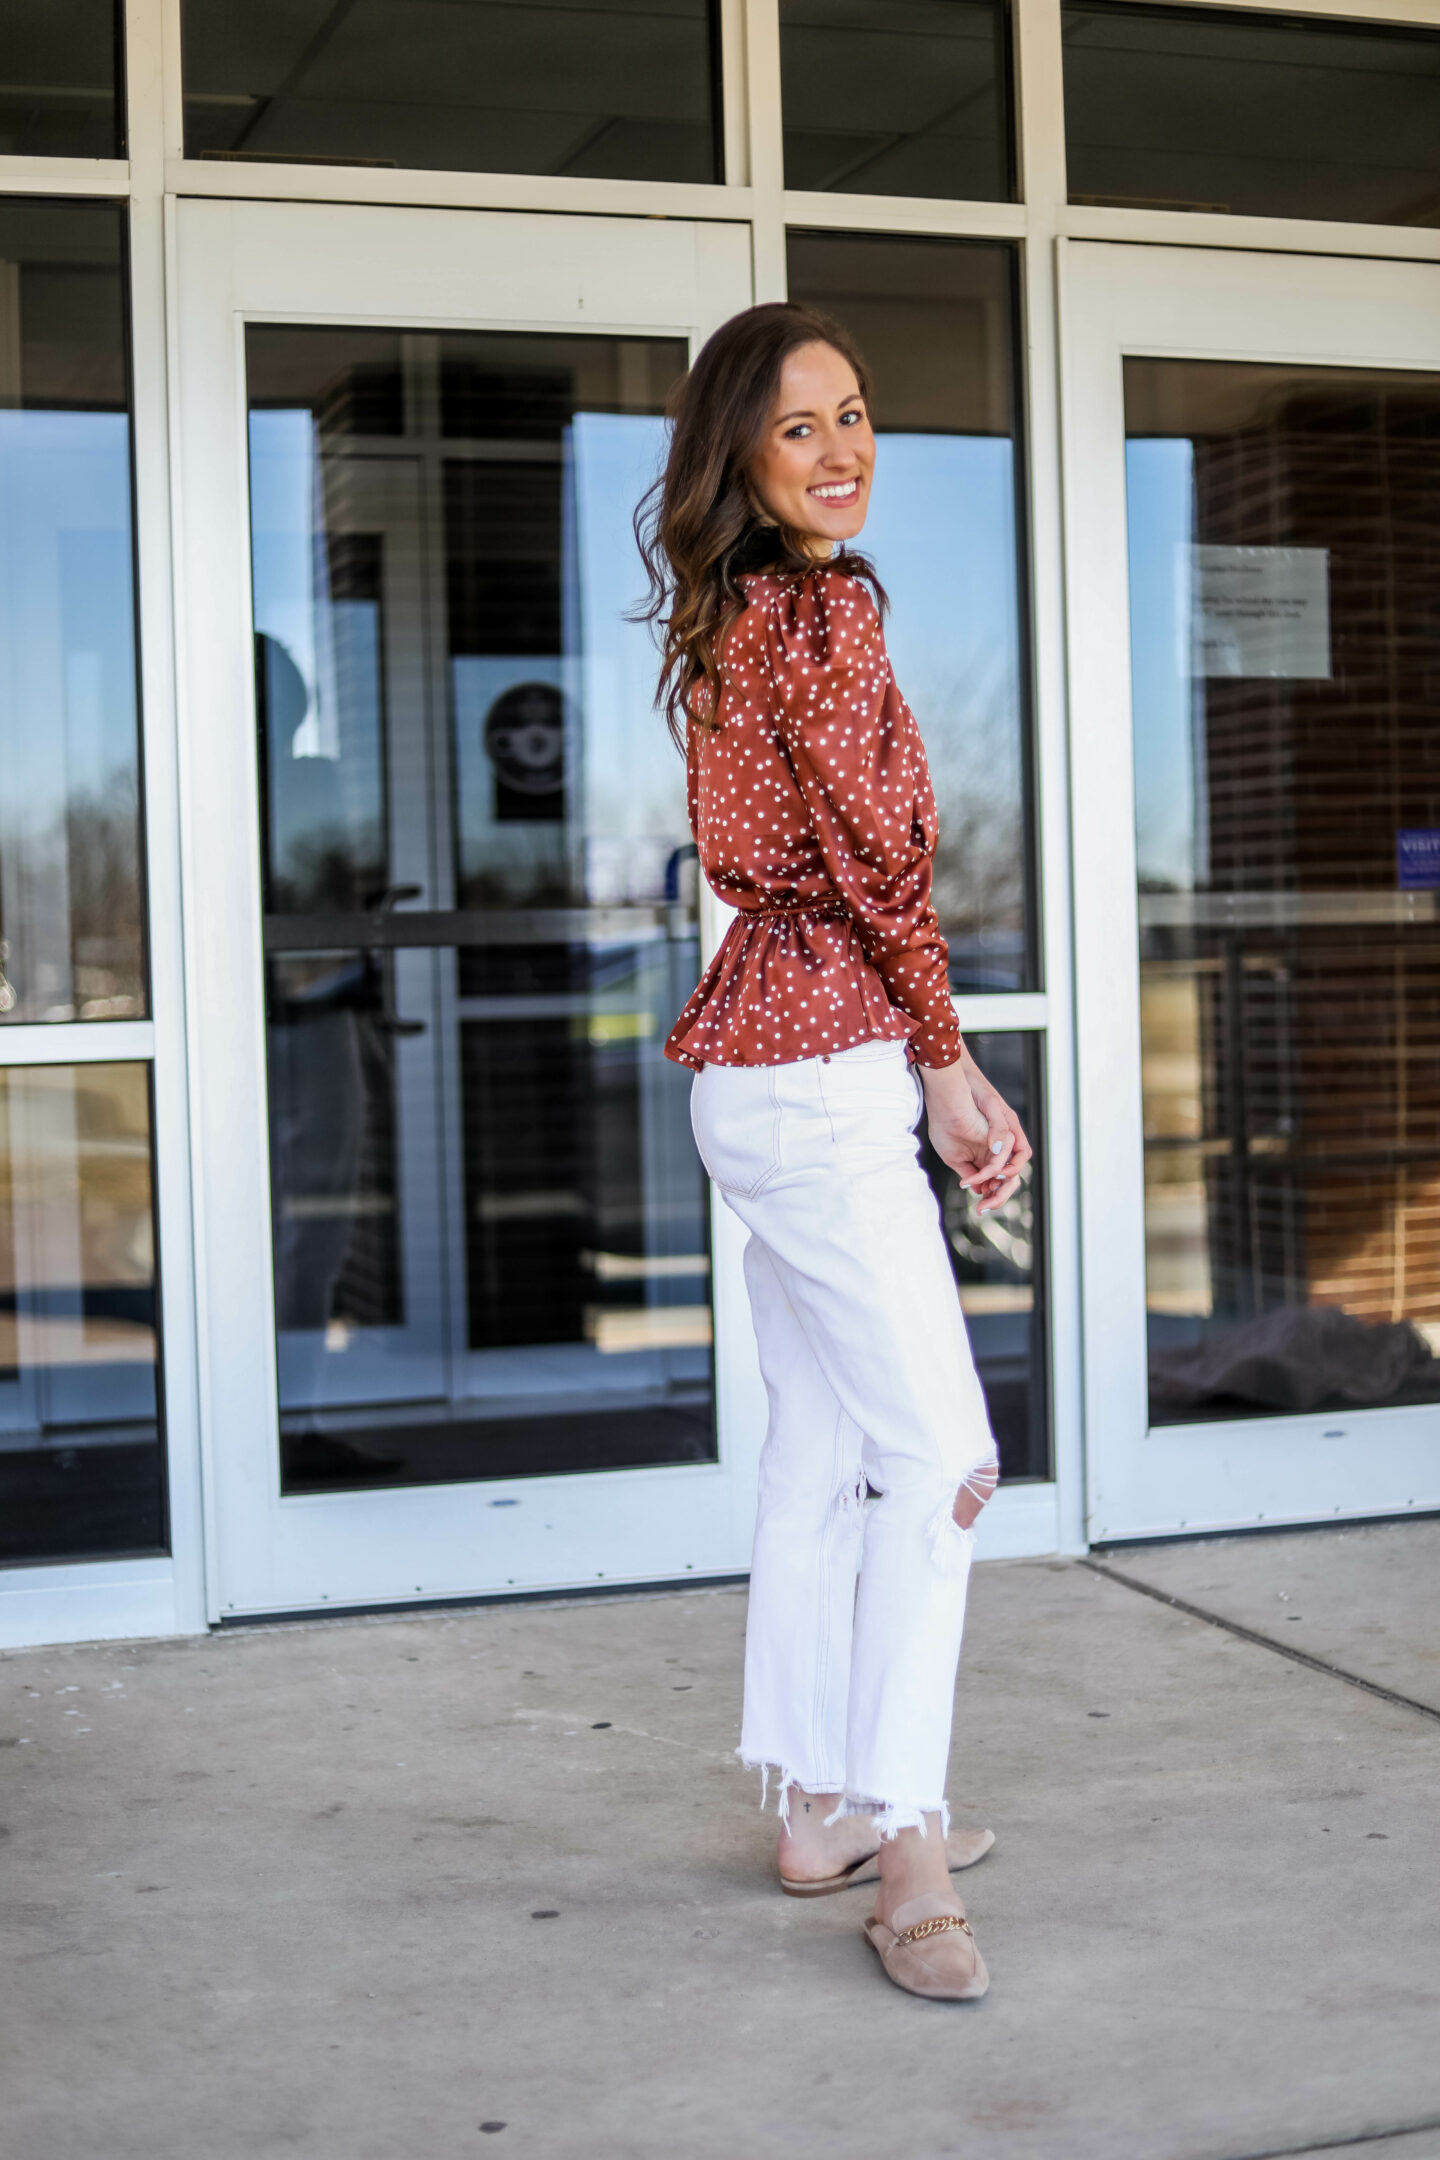 Polka dot top outfit from Walmart fashion on Coming Up Roses